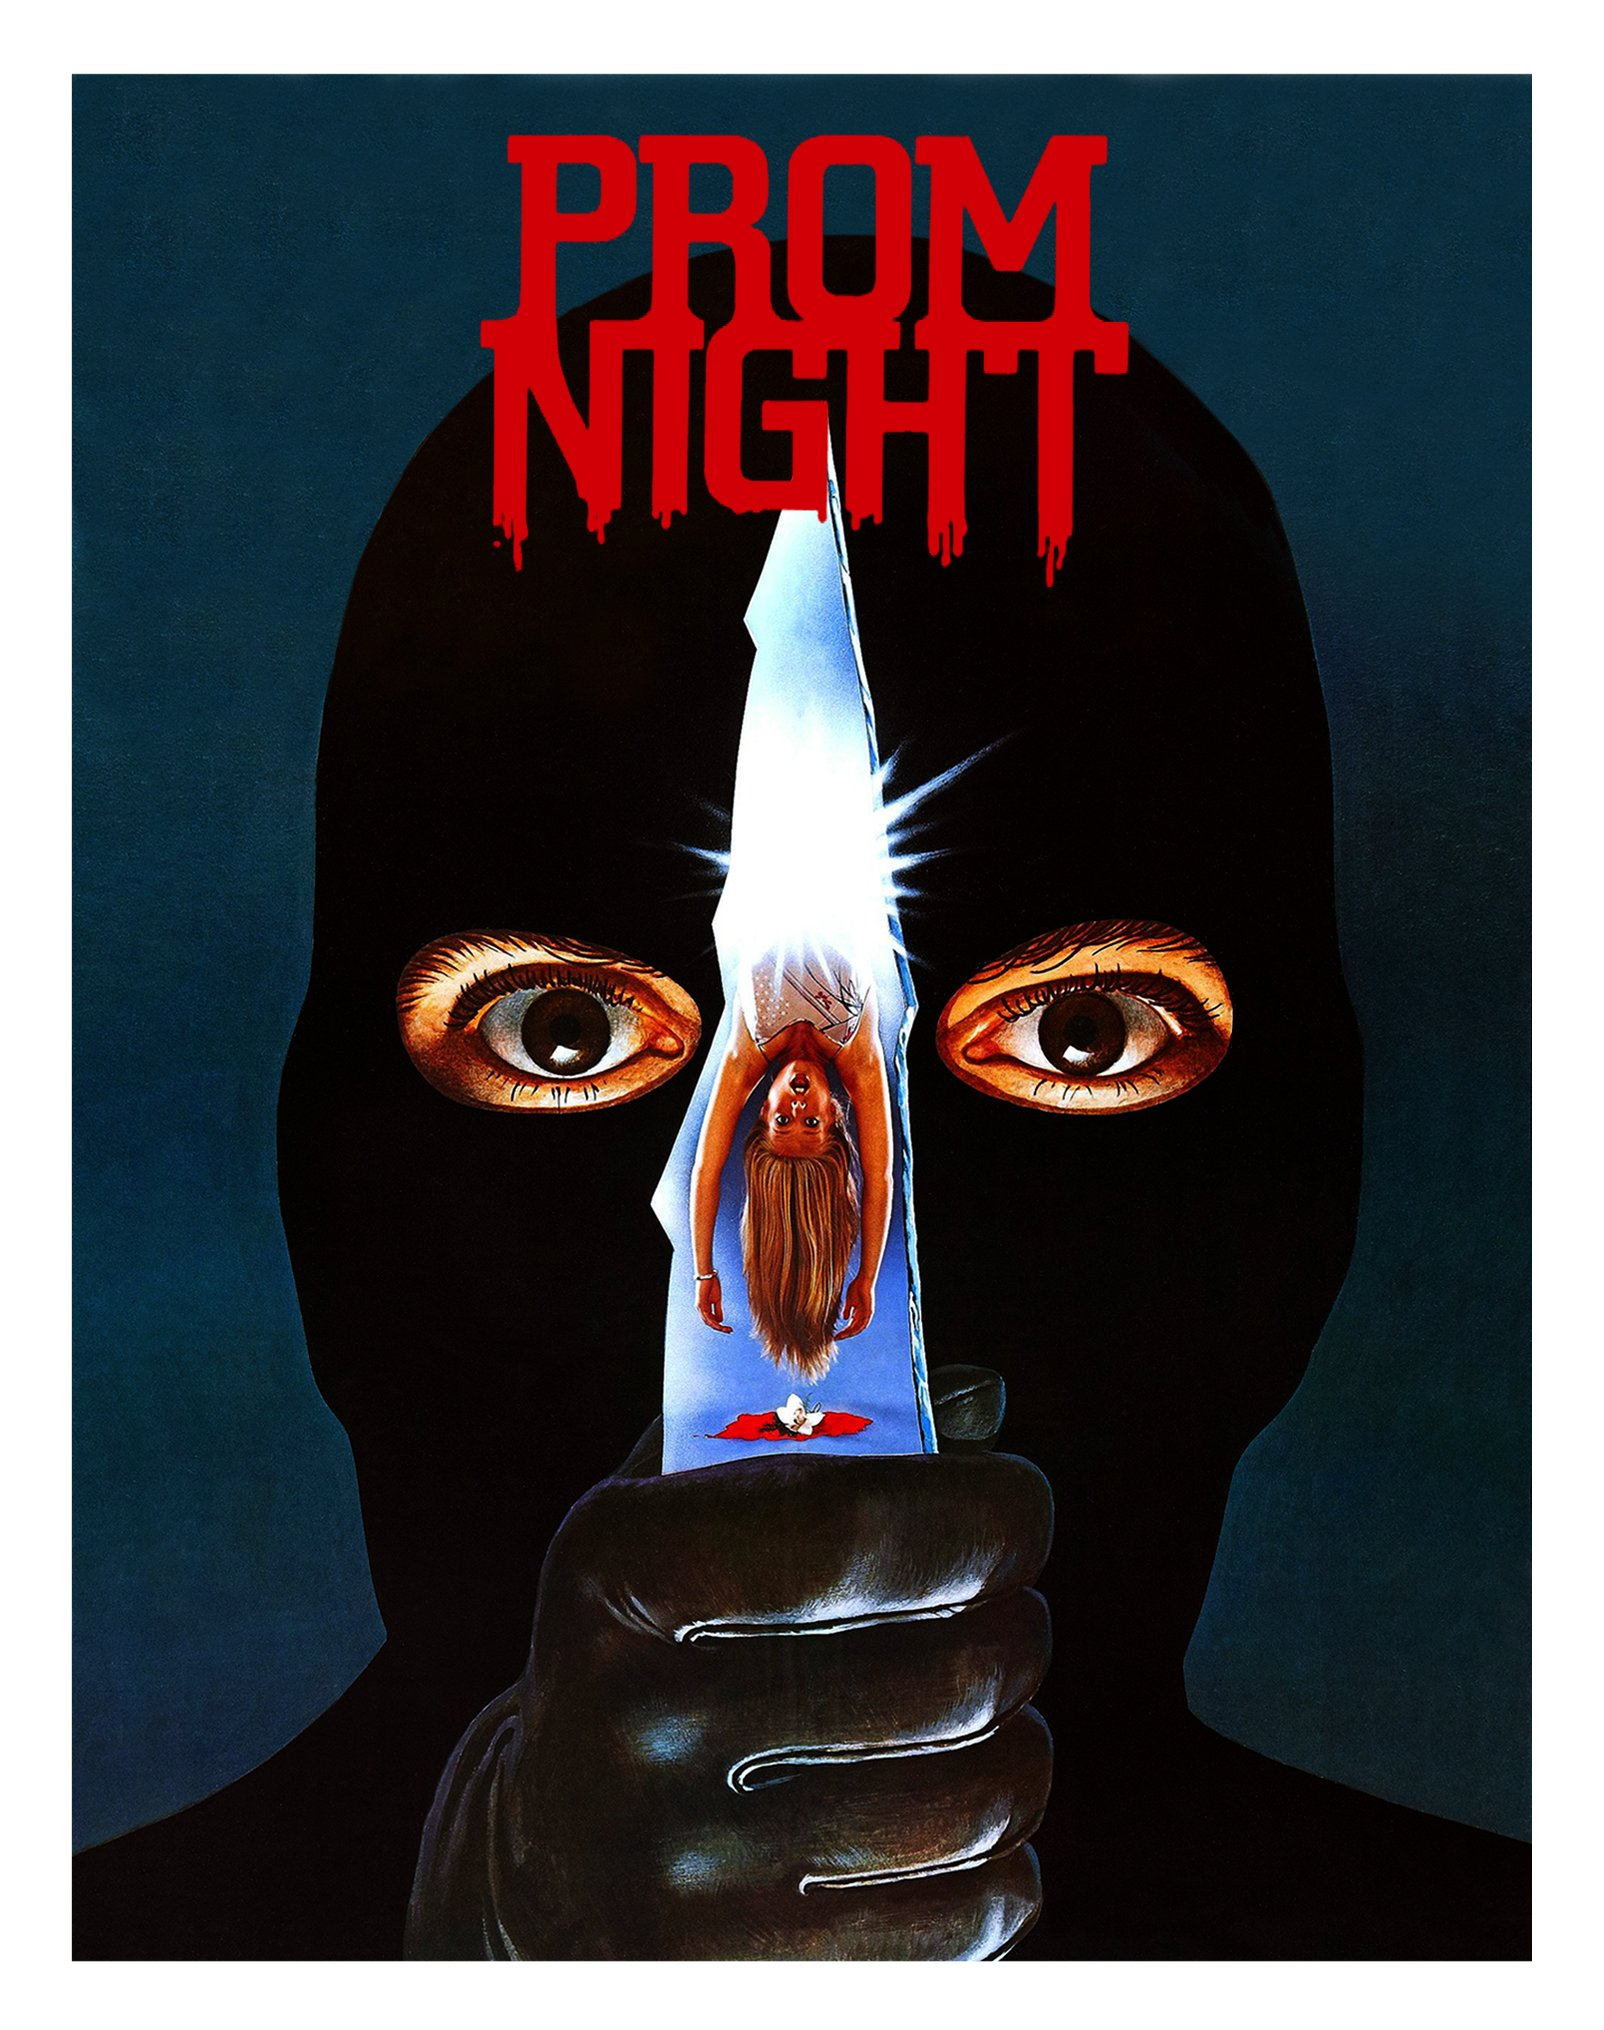 PROM NIGHT (1980) Available Now on Blu-ray from 101 Films